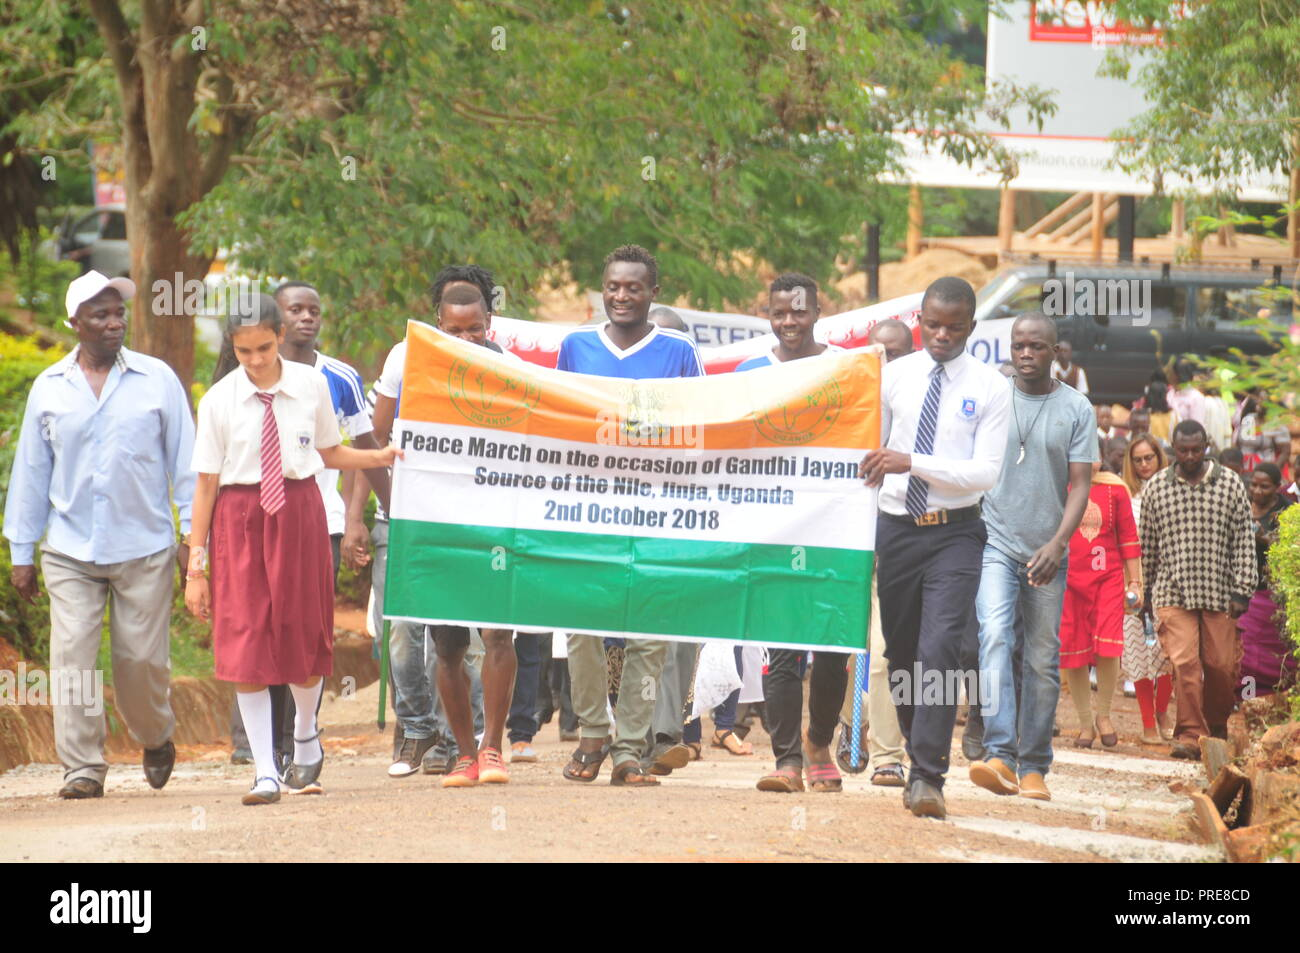 Jinja, Uganda. 2nd, October, 2018: Members of the Indian Association Uganda, officials from Busoga Kingdom Tourism Ministry and Jinja residents have joined other Indians all over the World in celebrating the 149th birthday of Mahatma Gandhi and the International Day of Non-Violence. In Uganda, the celebrations were led by the High Commissioner of India in Uganda Ravi Shankar (not in picture) at the Source of the Nile. They garlanded Mahatma Gandhi's Statue with flowers. Credit: Donald Kirya/Alamy Live News - Stock Image